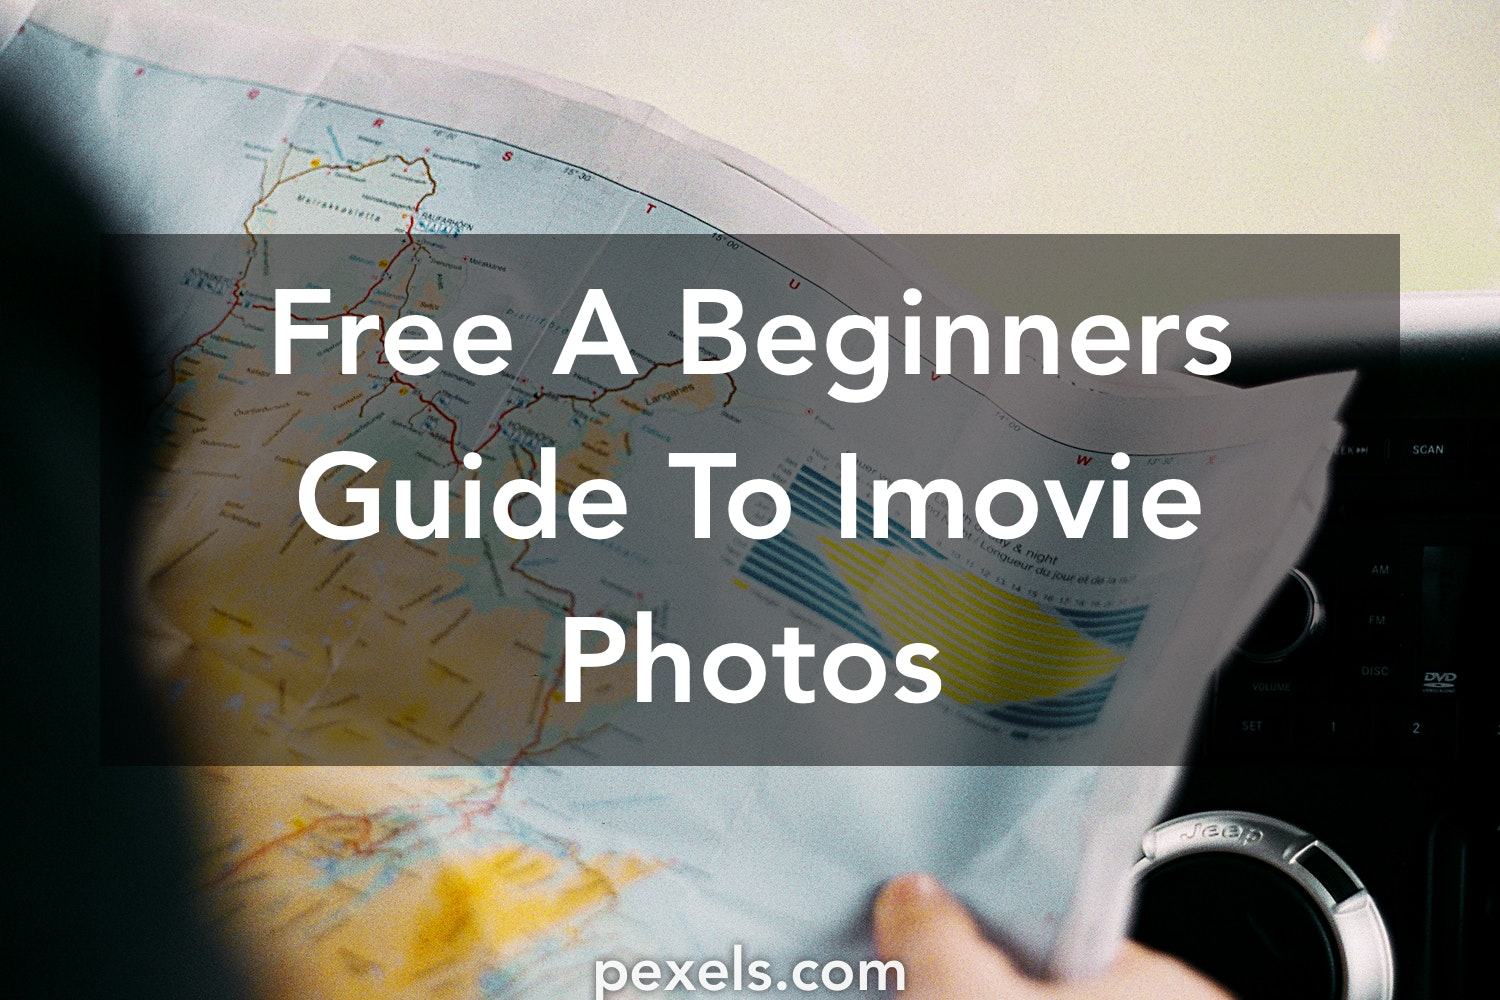 40+ Interesting A Beginners Guide To Imovie Photos · Pexels